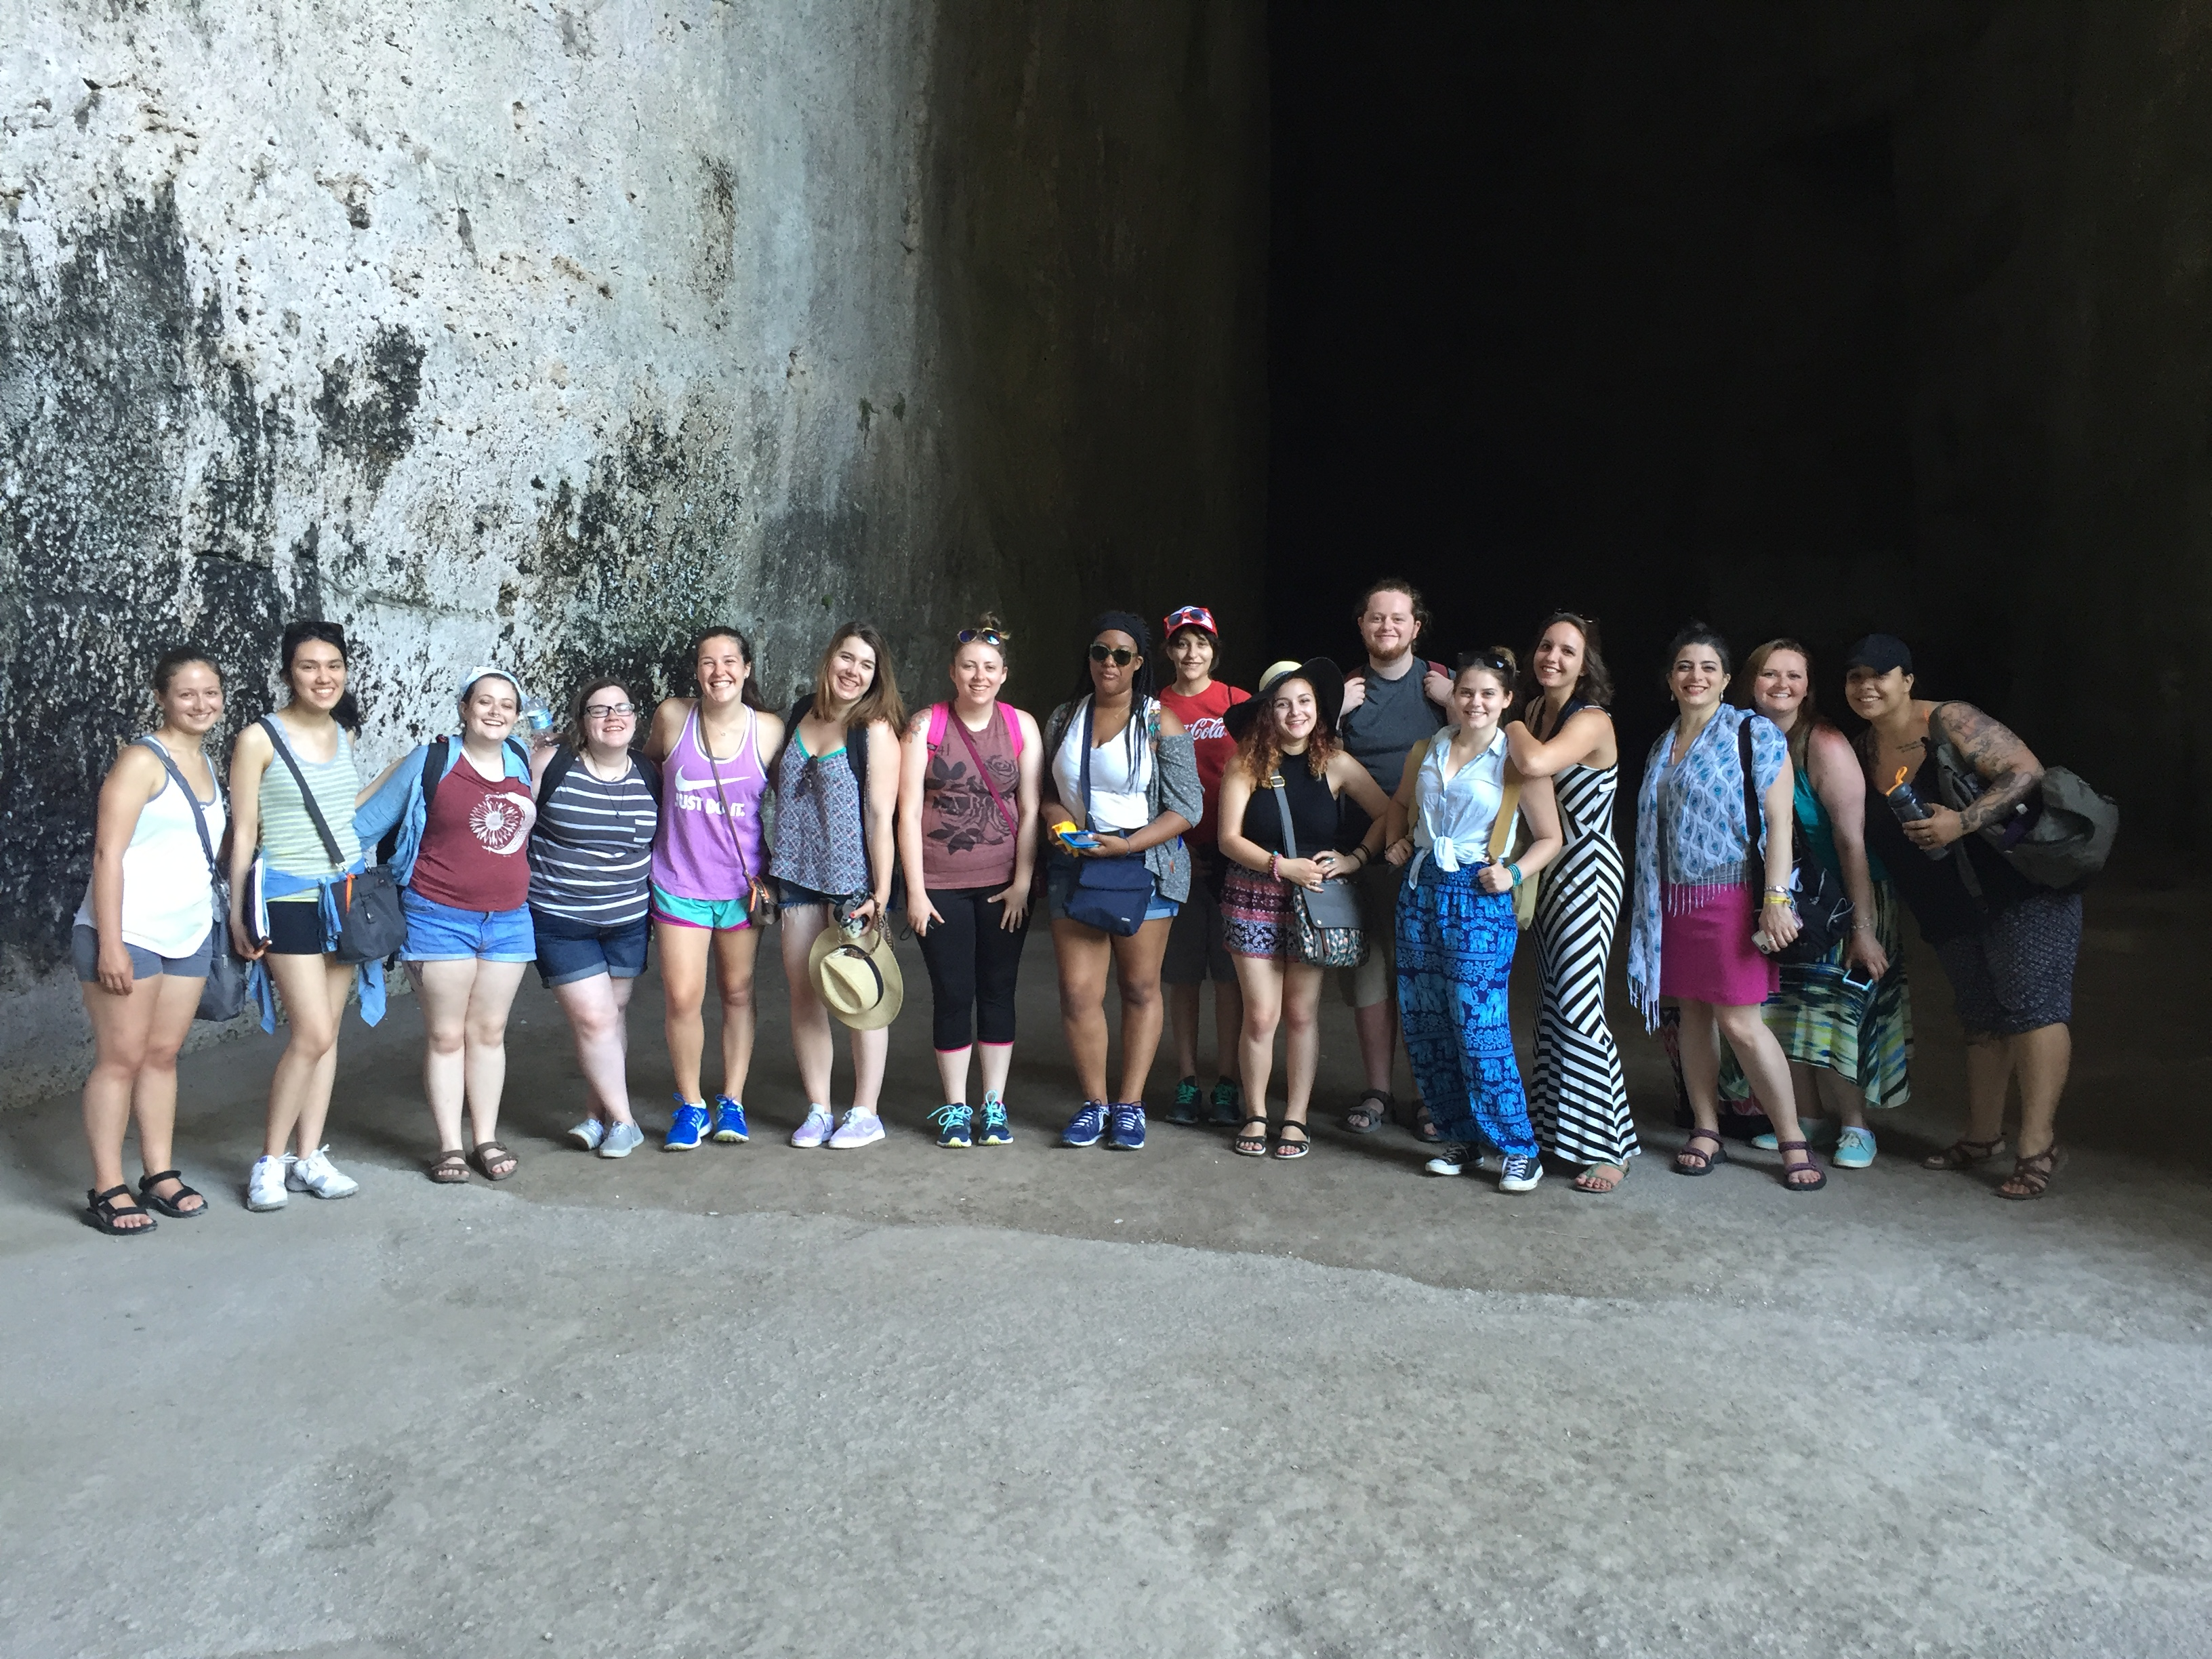 Group photo of 16 students from On-Site Studies in Art History Abroad Summer 2016 program, The Greeks in Ancient Italy. The students are posed at the mouth of an ancient rock quarry cave site in Syracuse, known as the 'Ear of Dionysios.' The cave is known for its exceptional acoustics: noises echo, but repeat only once. Ancient tyrants eavesdropped on prisoners they held captive here.